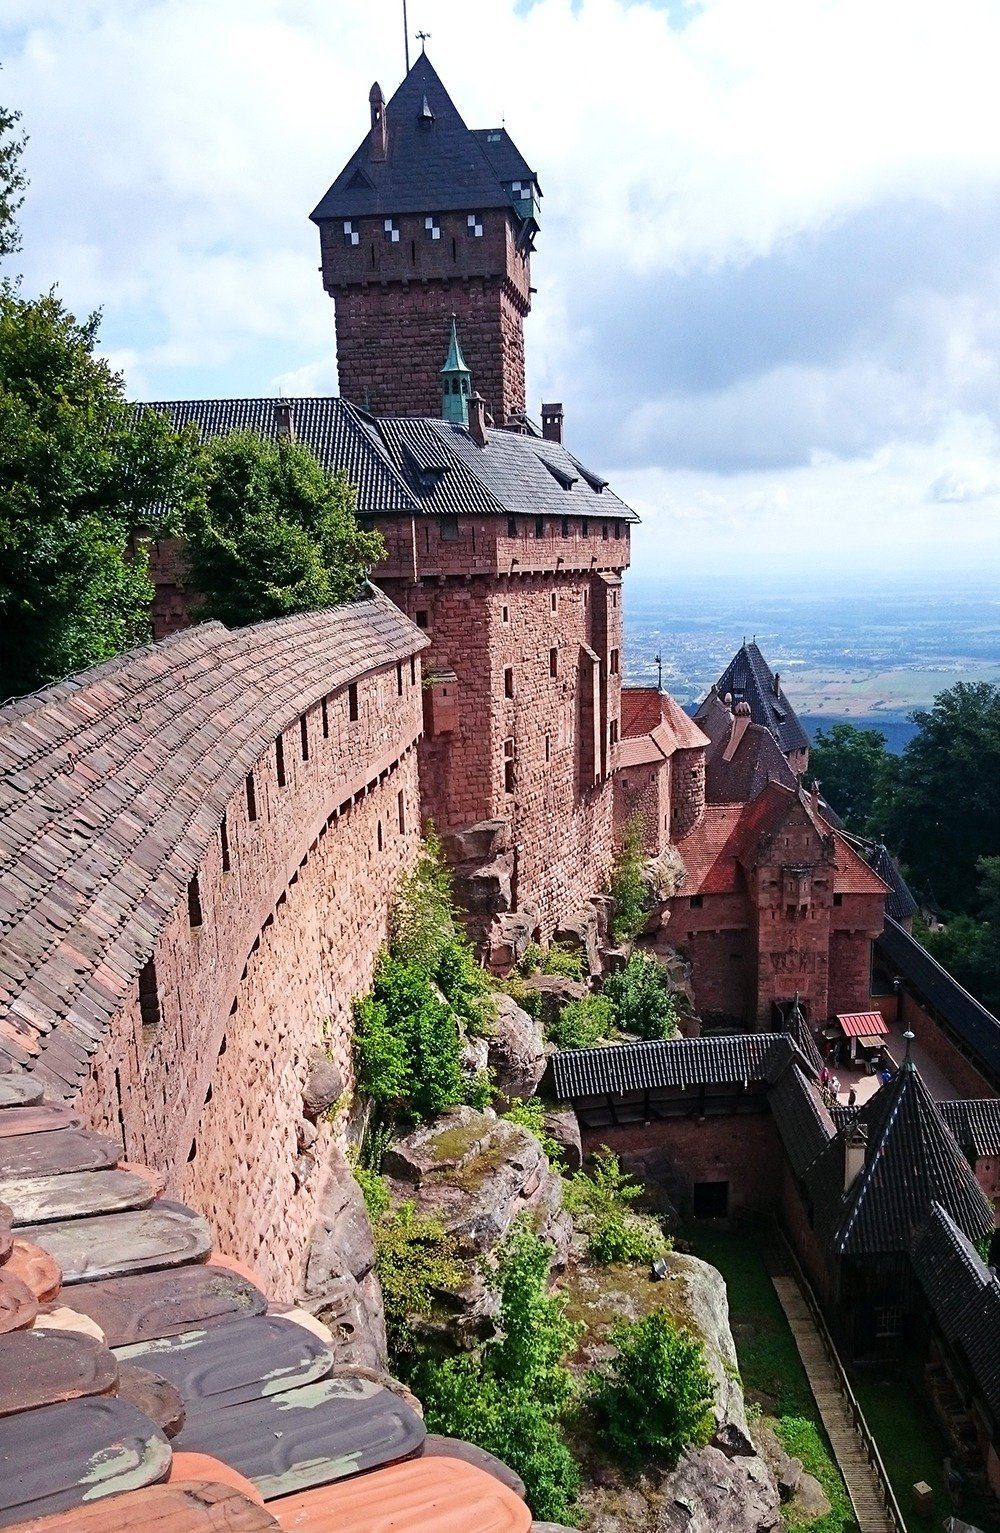 If you're driving from Colmar to Strasbourg, a great stopover is the medieval Haut-Koenigsbourg. This historical castle-fortress has changed hands from royal families to robber barons to invading troops throughout the centuries. Read more for a comprehensive guide to driving in Alsace.